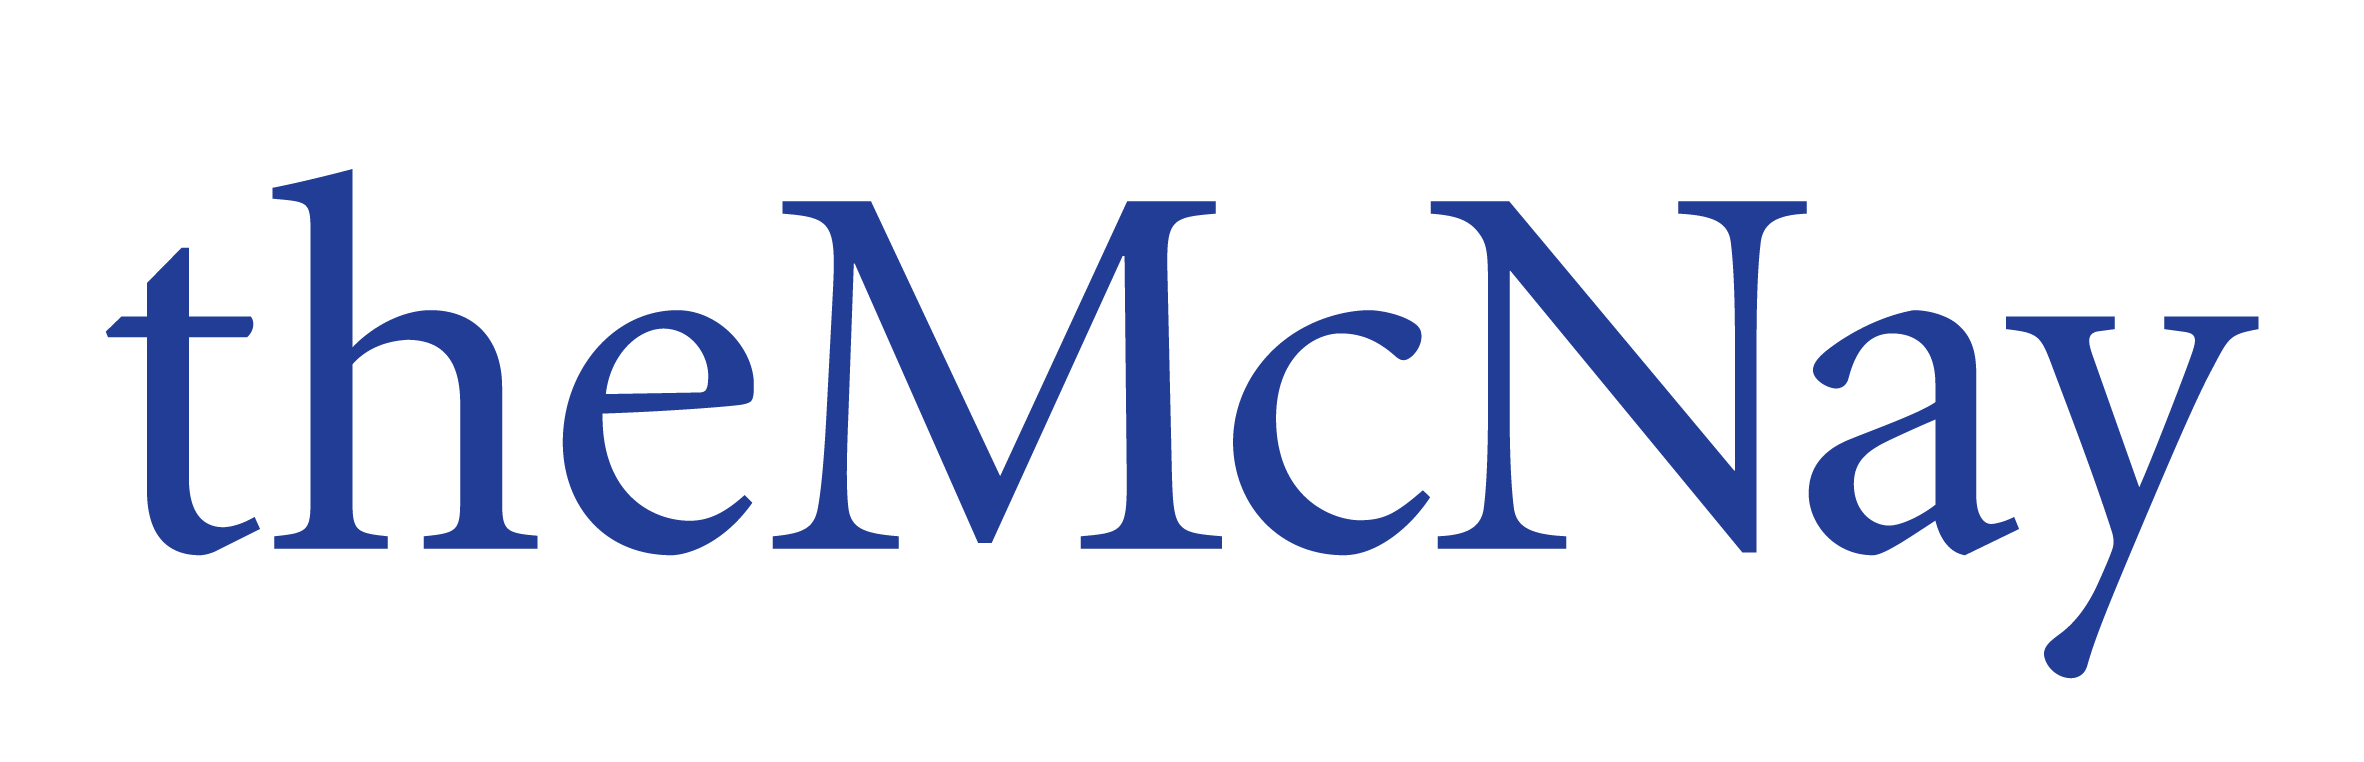 McNay logo colored blue